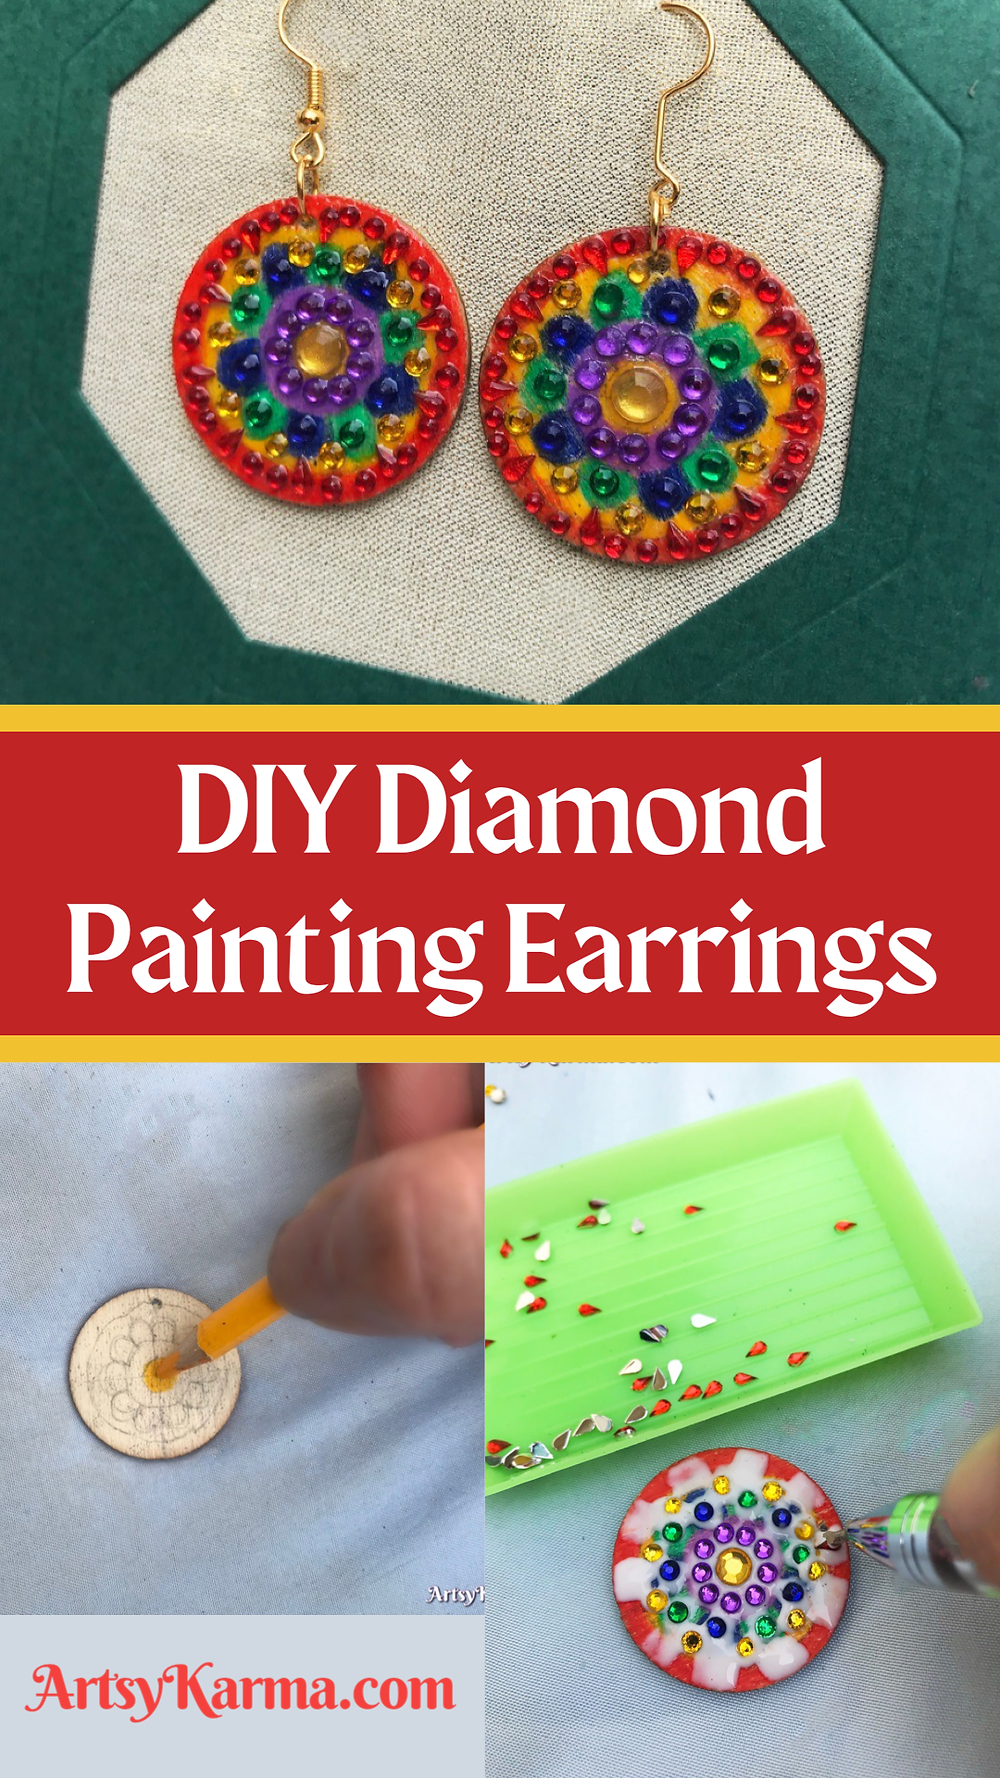 Diy diamond painting earrings easy